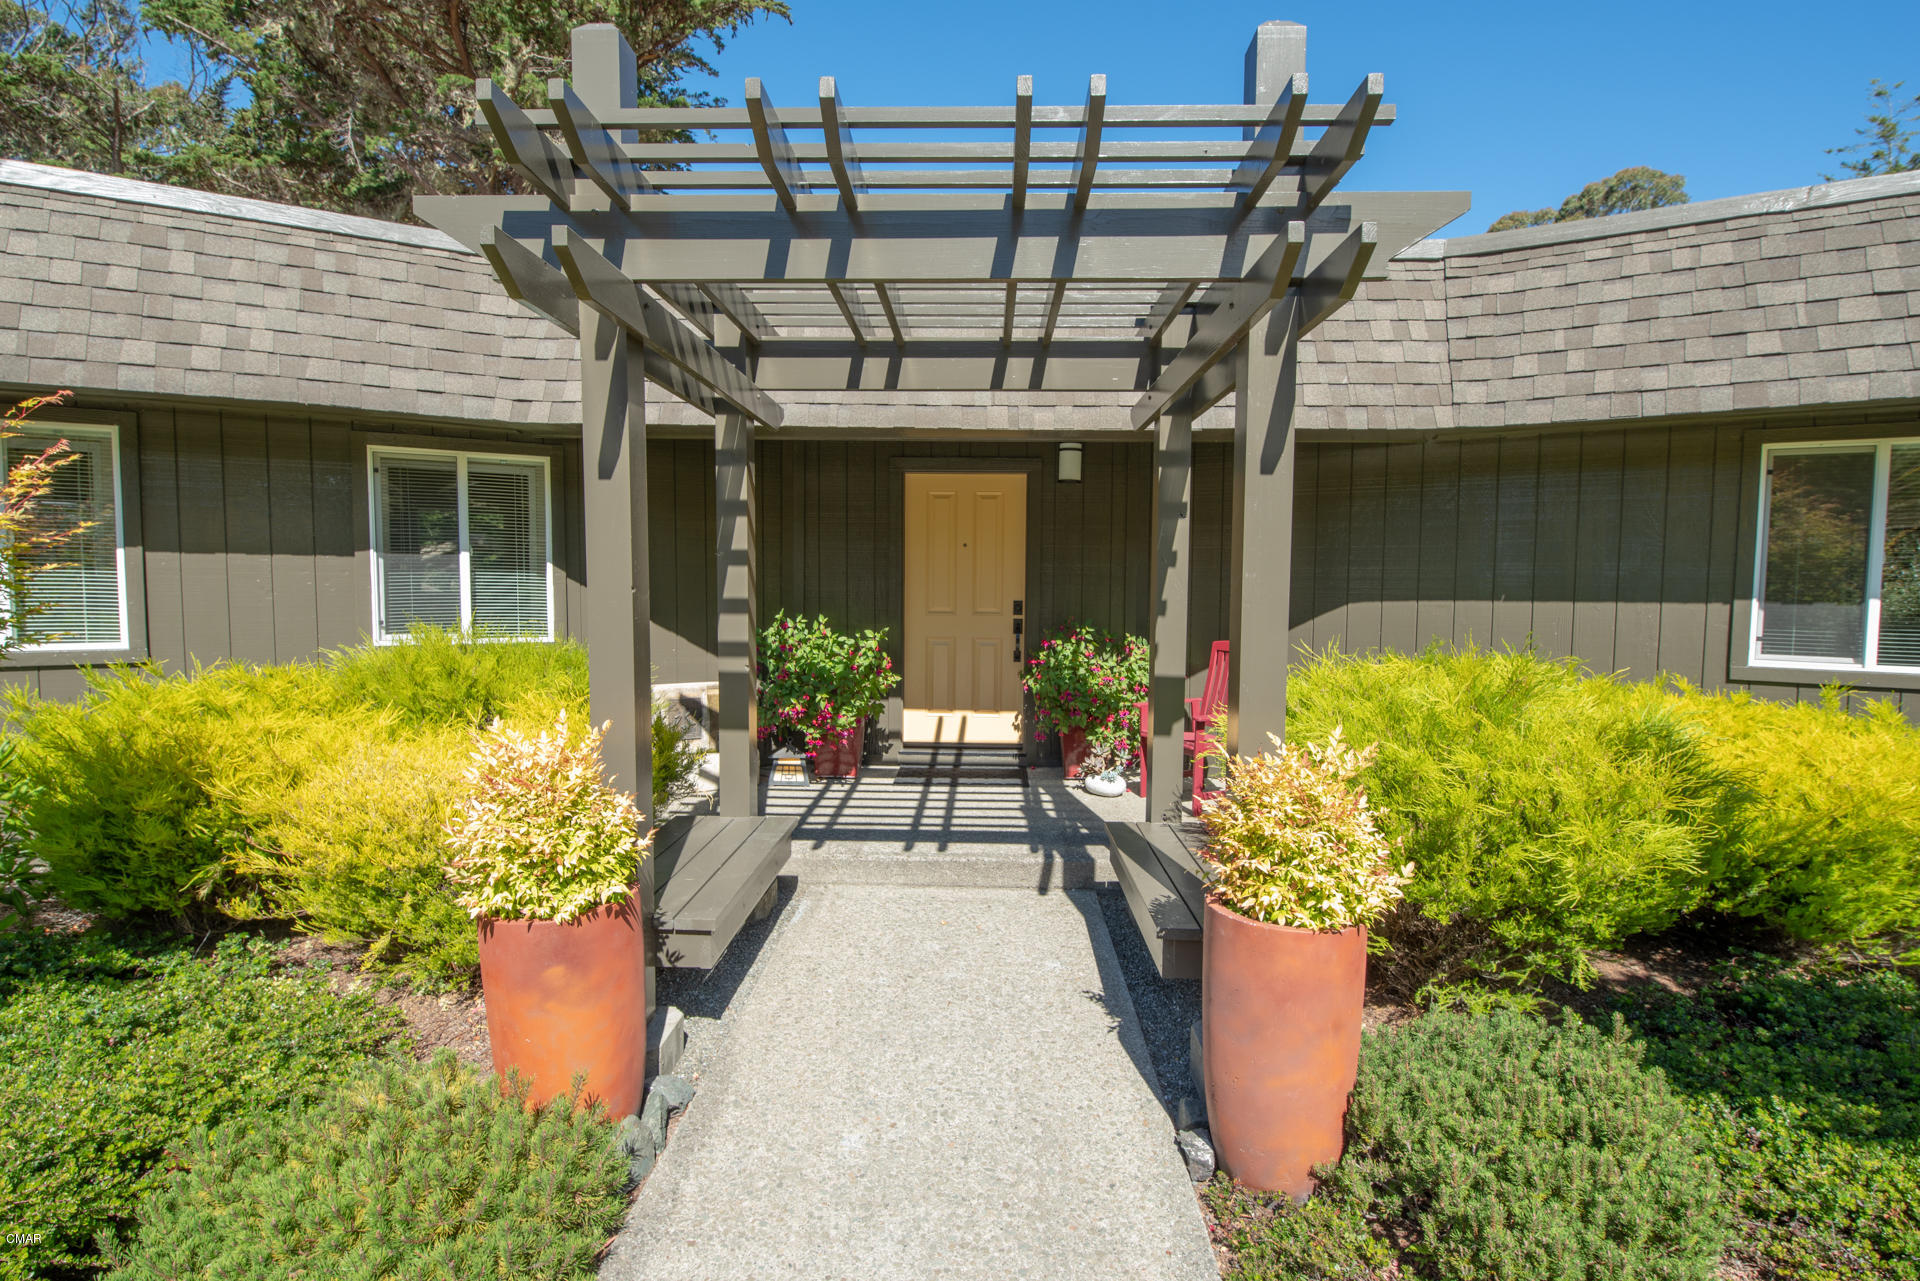 Single Family Home for Sale at 44900 Baywood Drive 44900 Baywood Drive Mendocino, California 95460 United States